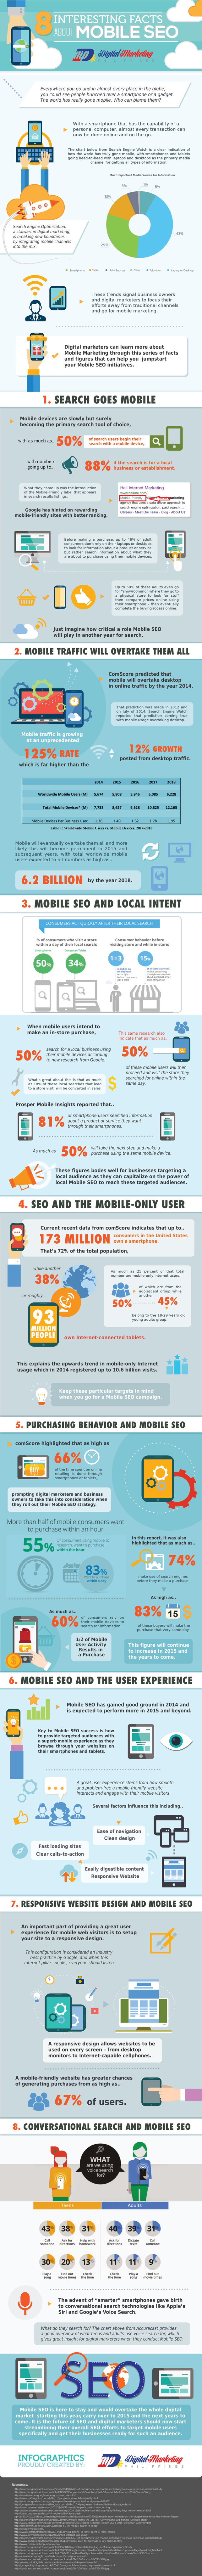 infographie-mobile-friendly-statistiques